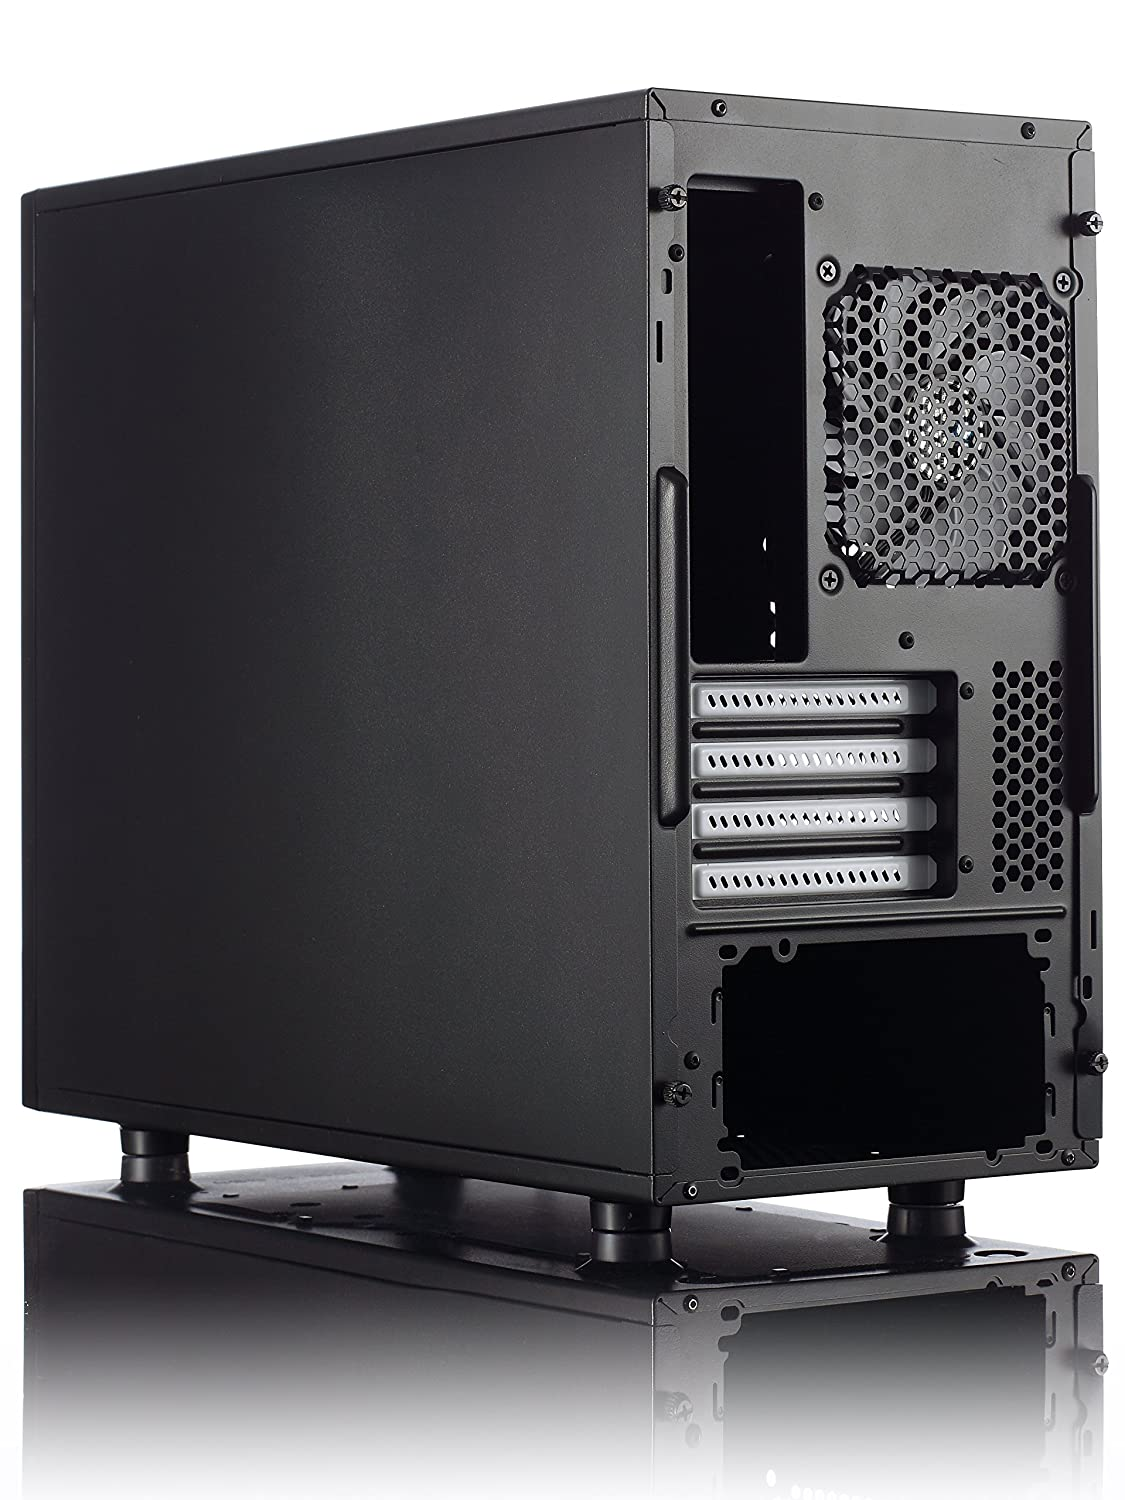 Amazon.com: Fractal Core 1300 Micro at Cooling Cases FD-CA-CORE ...